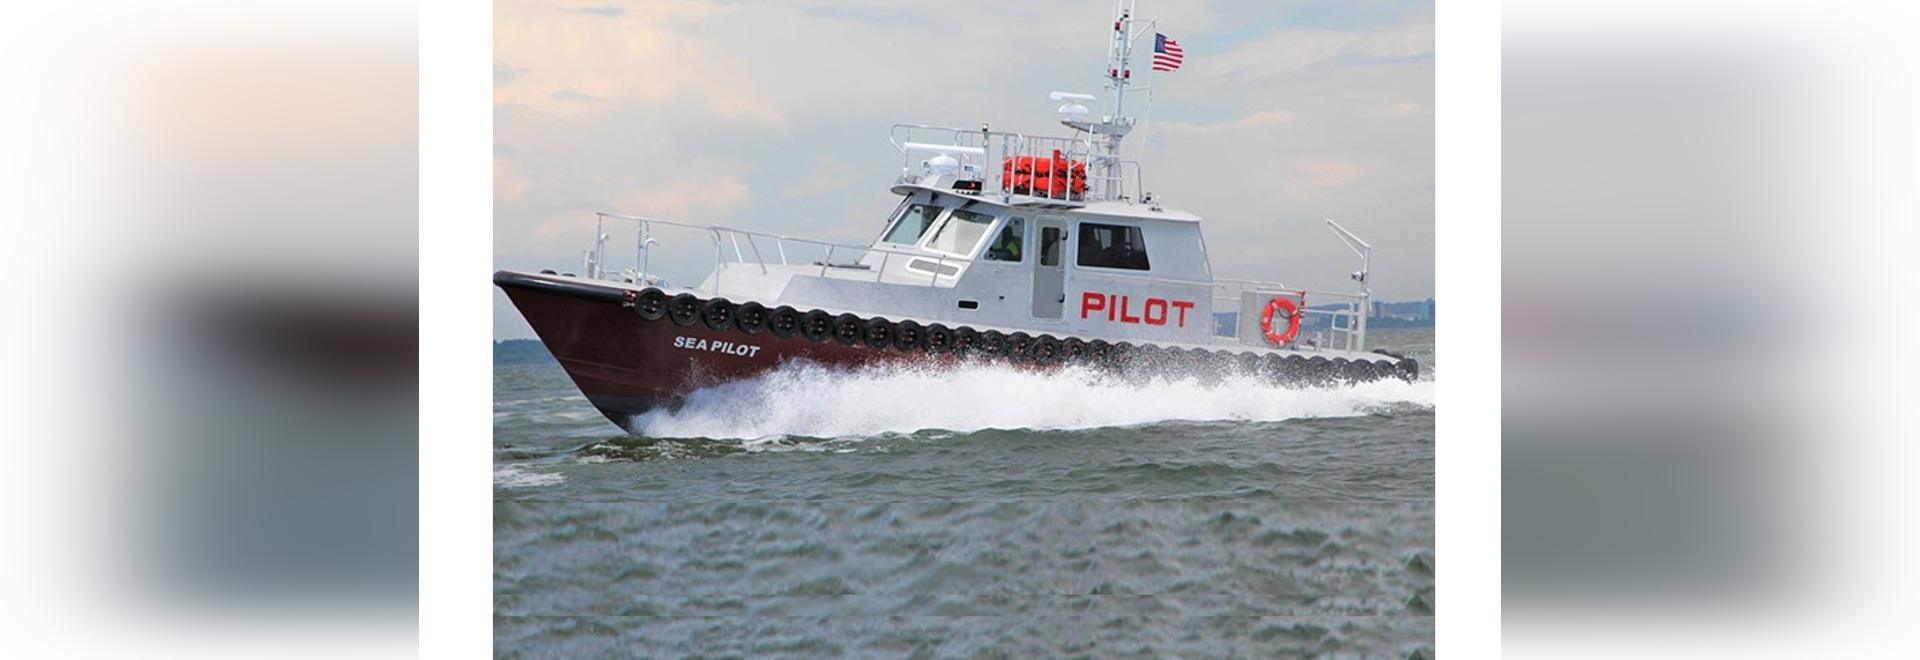 New boat is the sixth St. John's Class launch built for the Delta pilots by Somerset, Mass. shipyard.